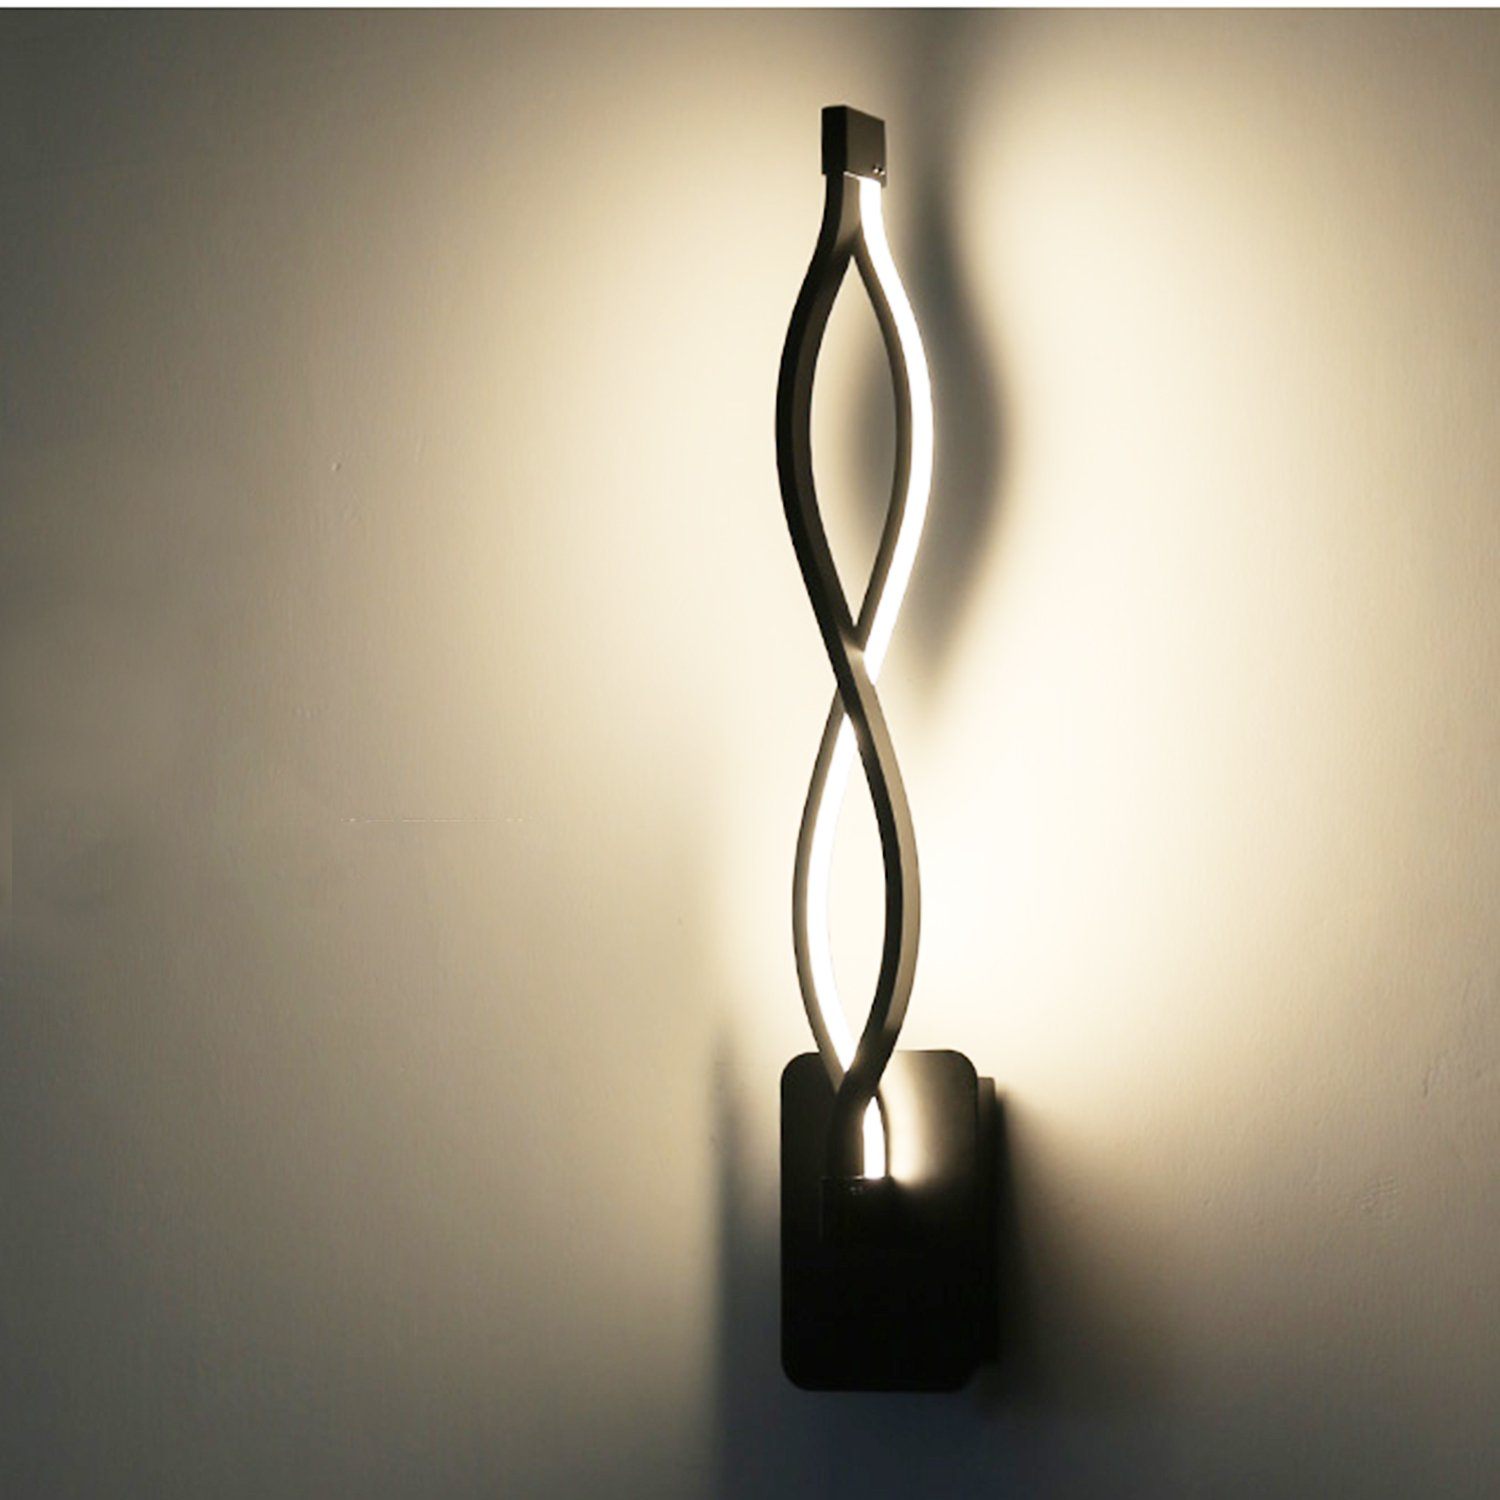 LightInTheBox Modern/Contemporary LED Wall Lamps Sconces Aluminum Wall Light Ambient Light Wall Lighting Fixture Bulb Included (Black, Warm White)